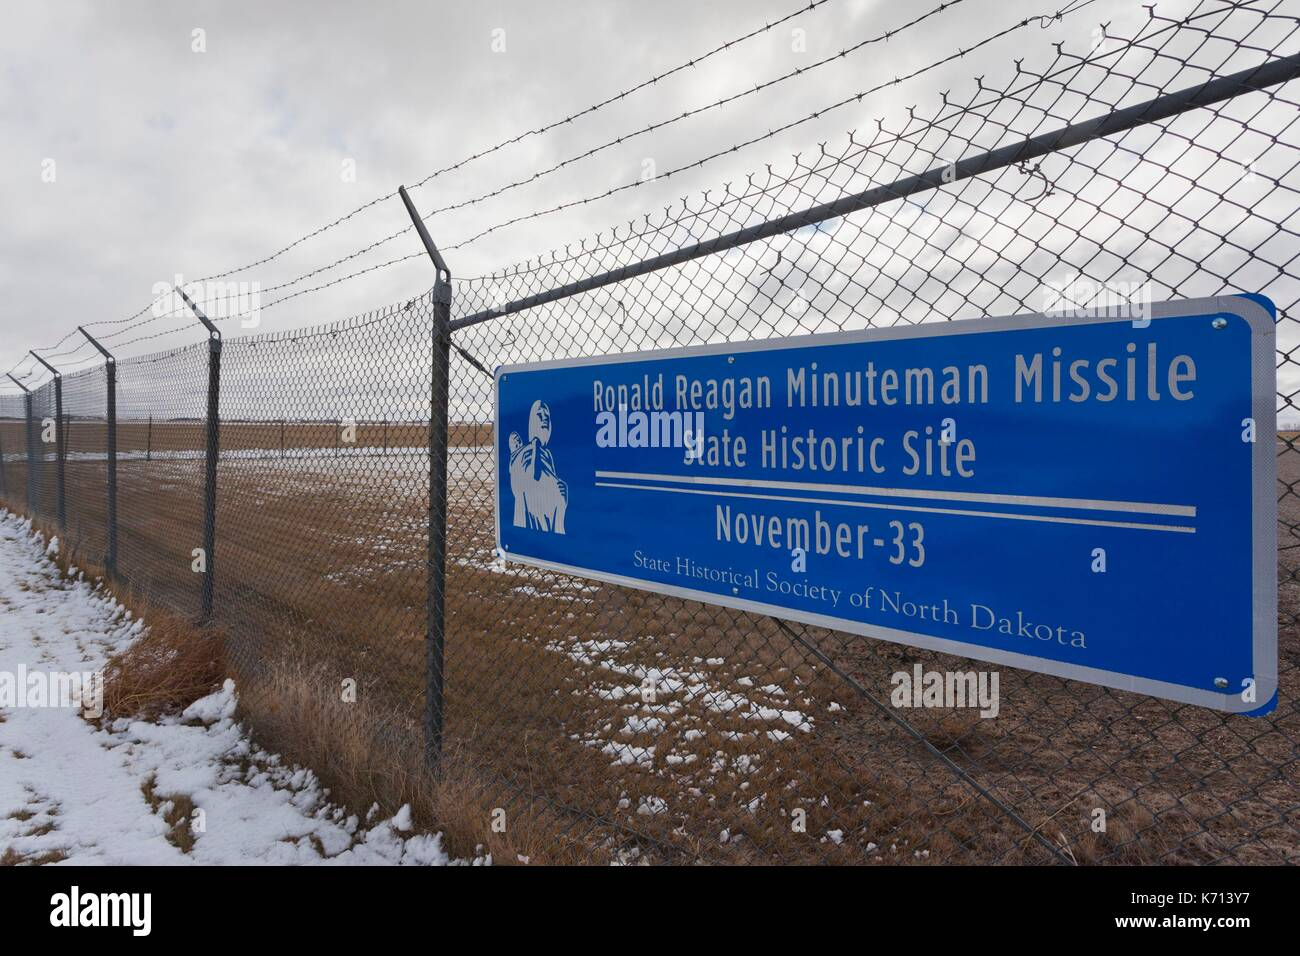 Map Us Missile Silos%0A United States  North Dakota  Cooperstown  Ronald Reagan Minuteman Missile  State Historic Site